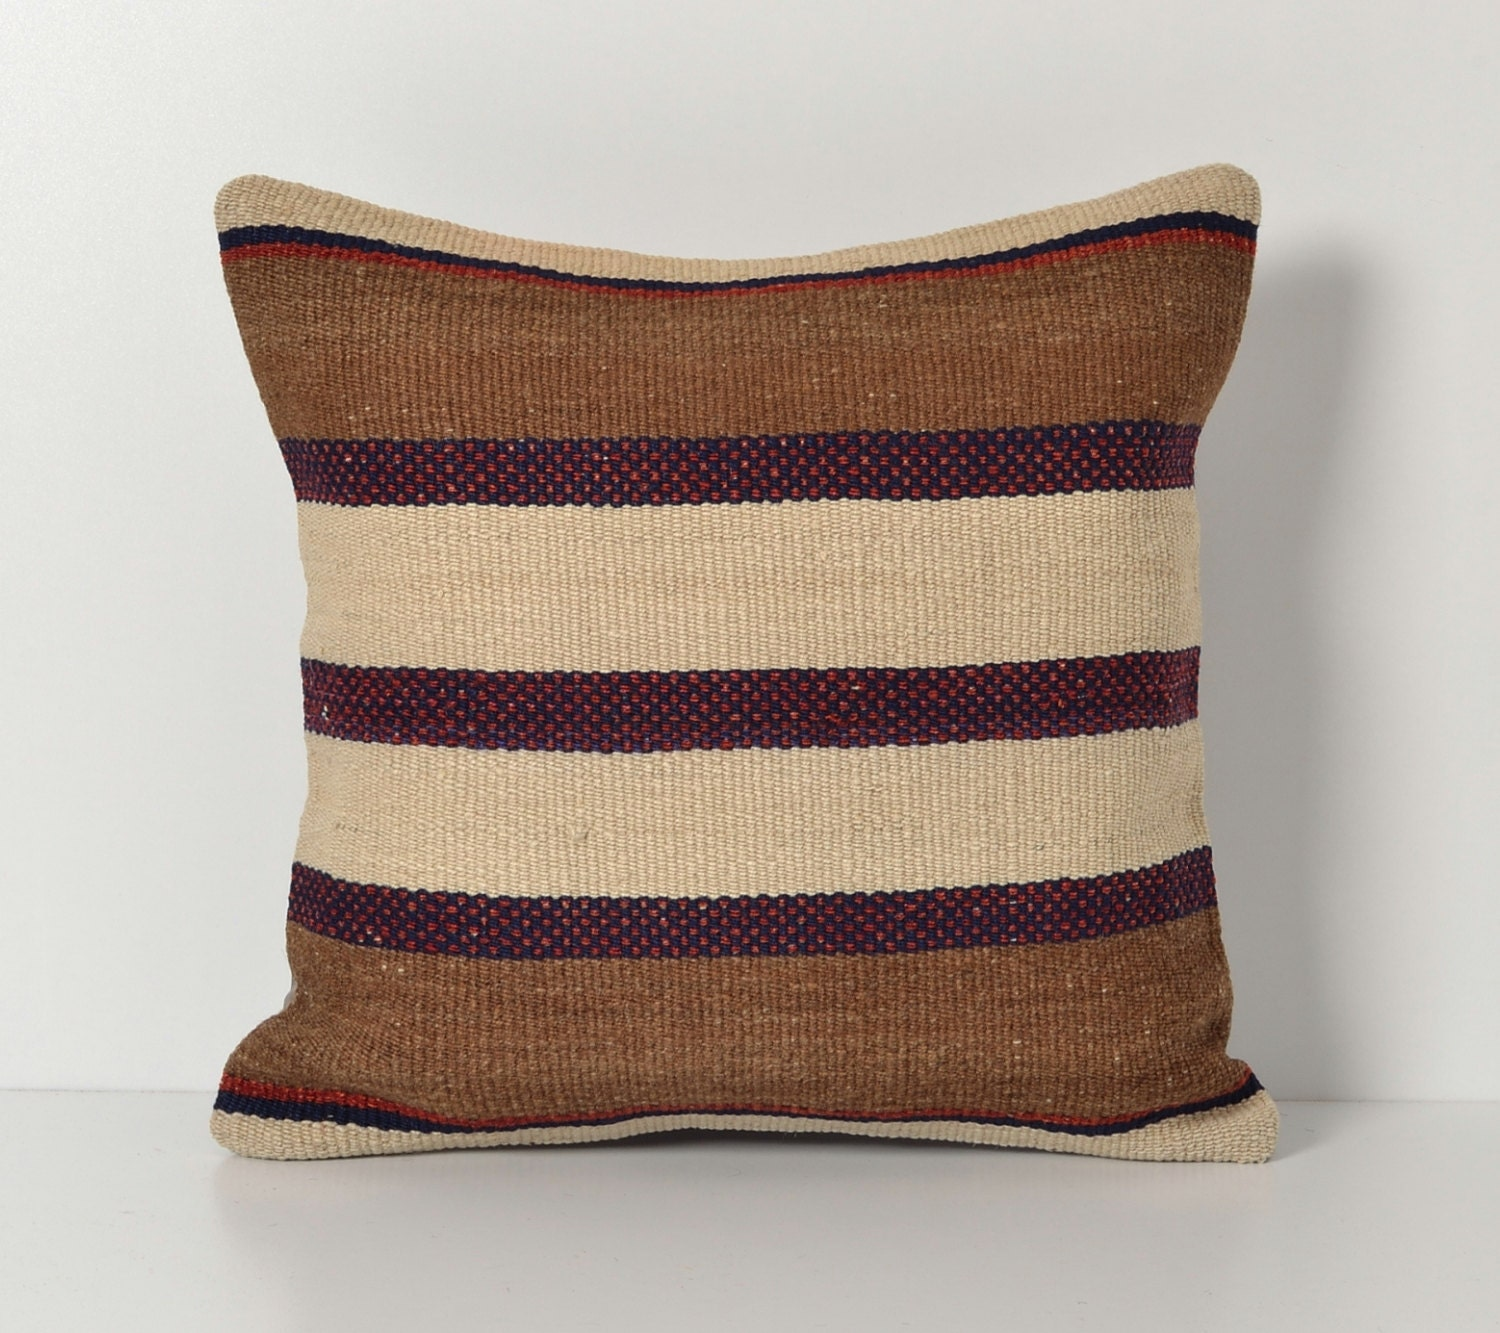 Turkish Throw Pillow Covers : Turkish Kilim Pillow Covers Handwoven Modern Striped by pillowme